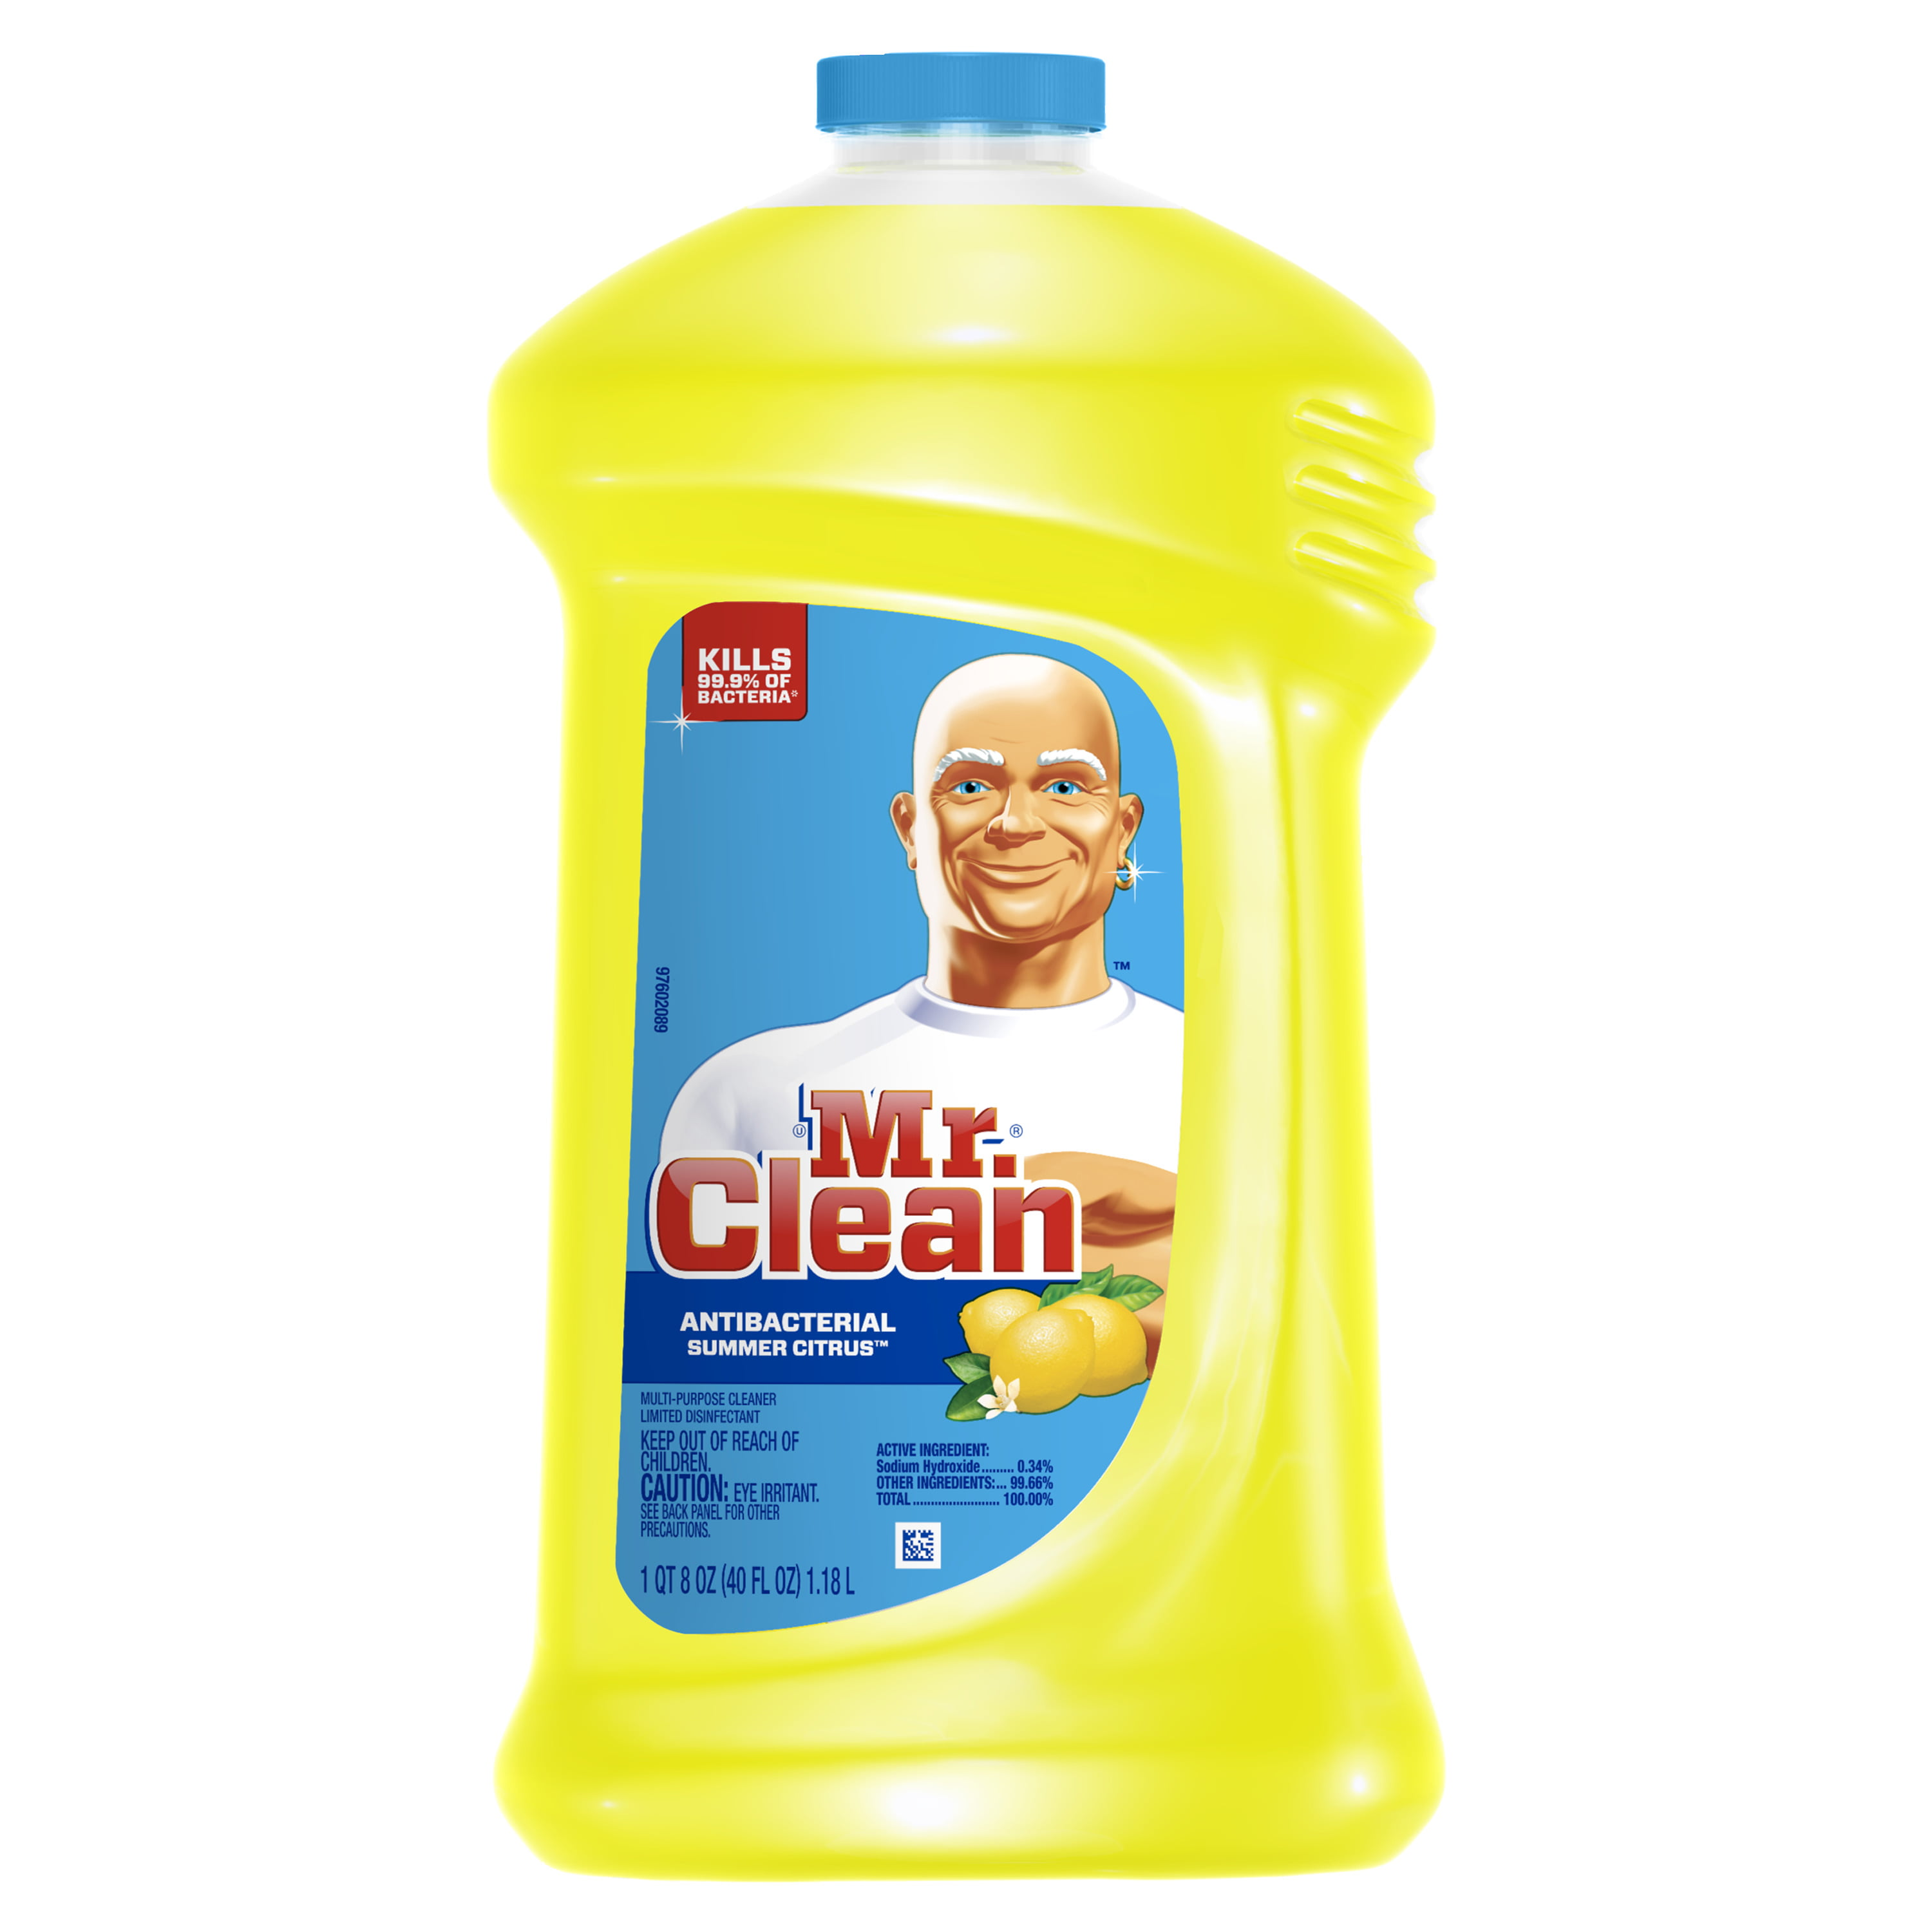 Mr. Clean Antibacterial Multi-Surface Cleaner, Summer Citrus, 40 fl oz